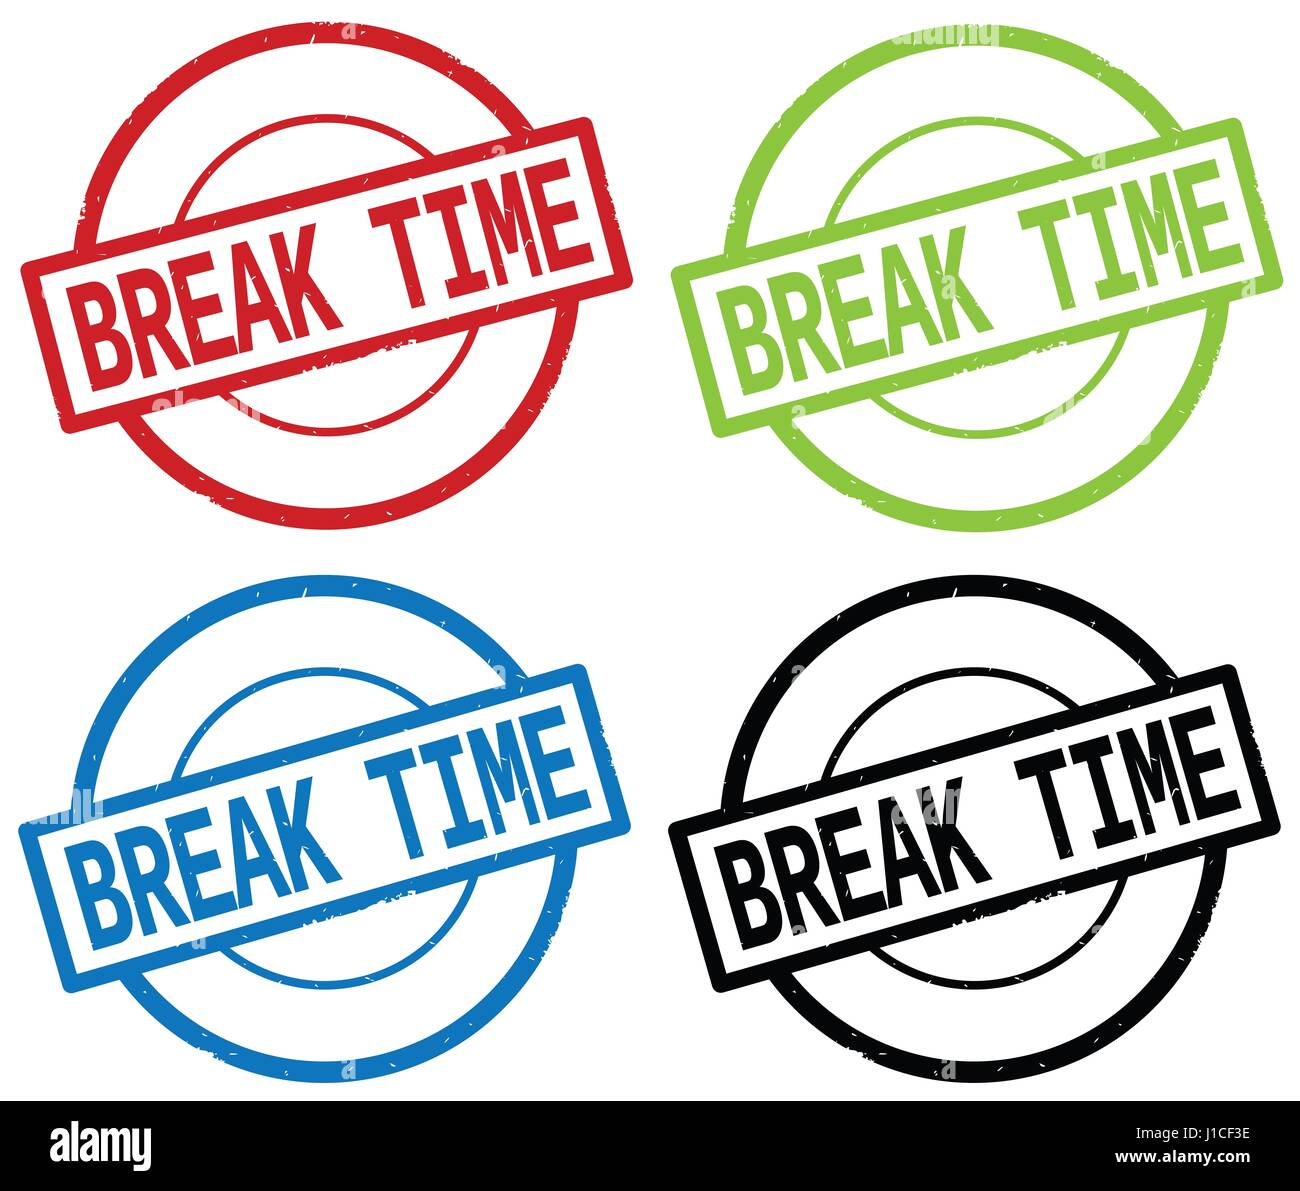 BREAK TIME Text On Round Simple Stamp Sign In Color Set